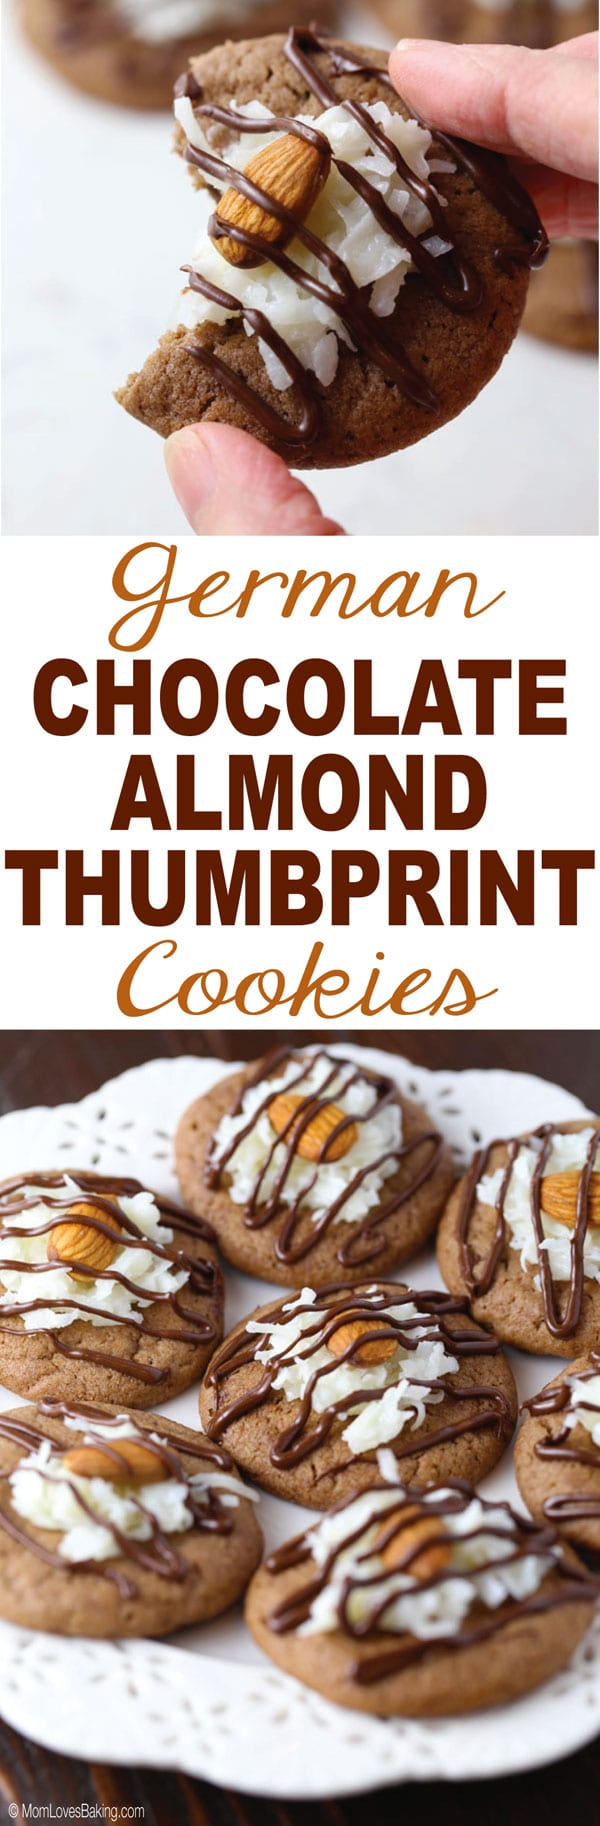 German Chocolate Almond Thumbprint Cookies